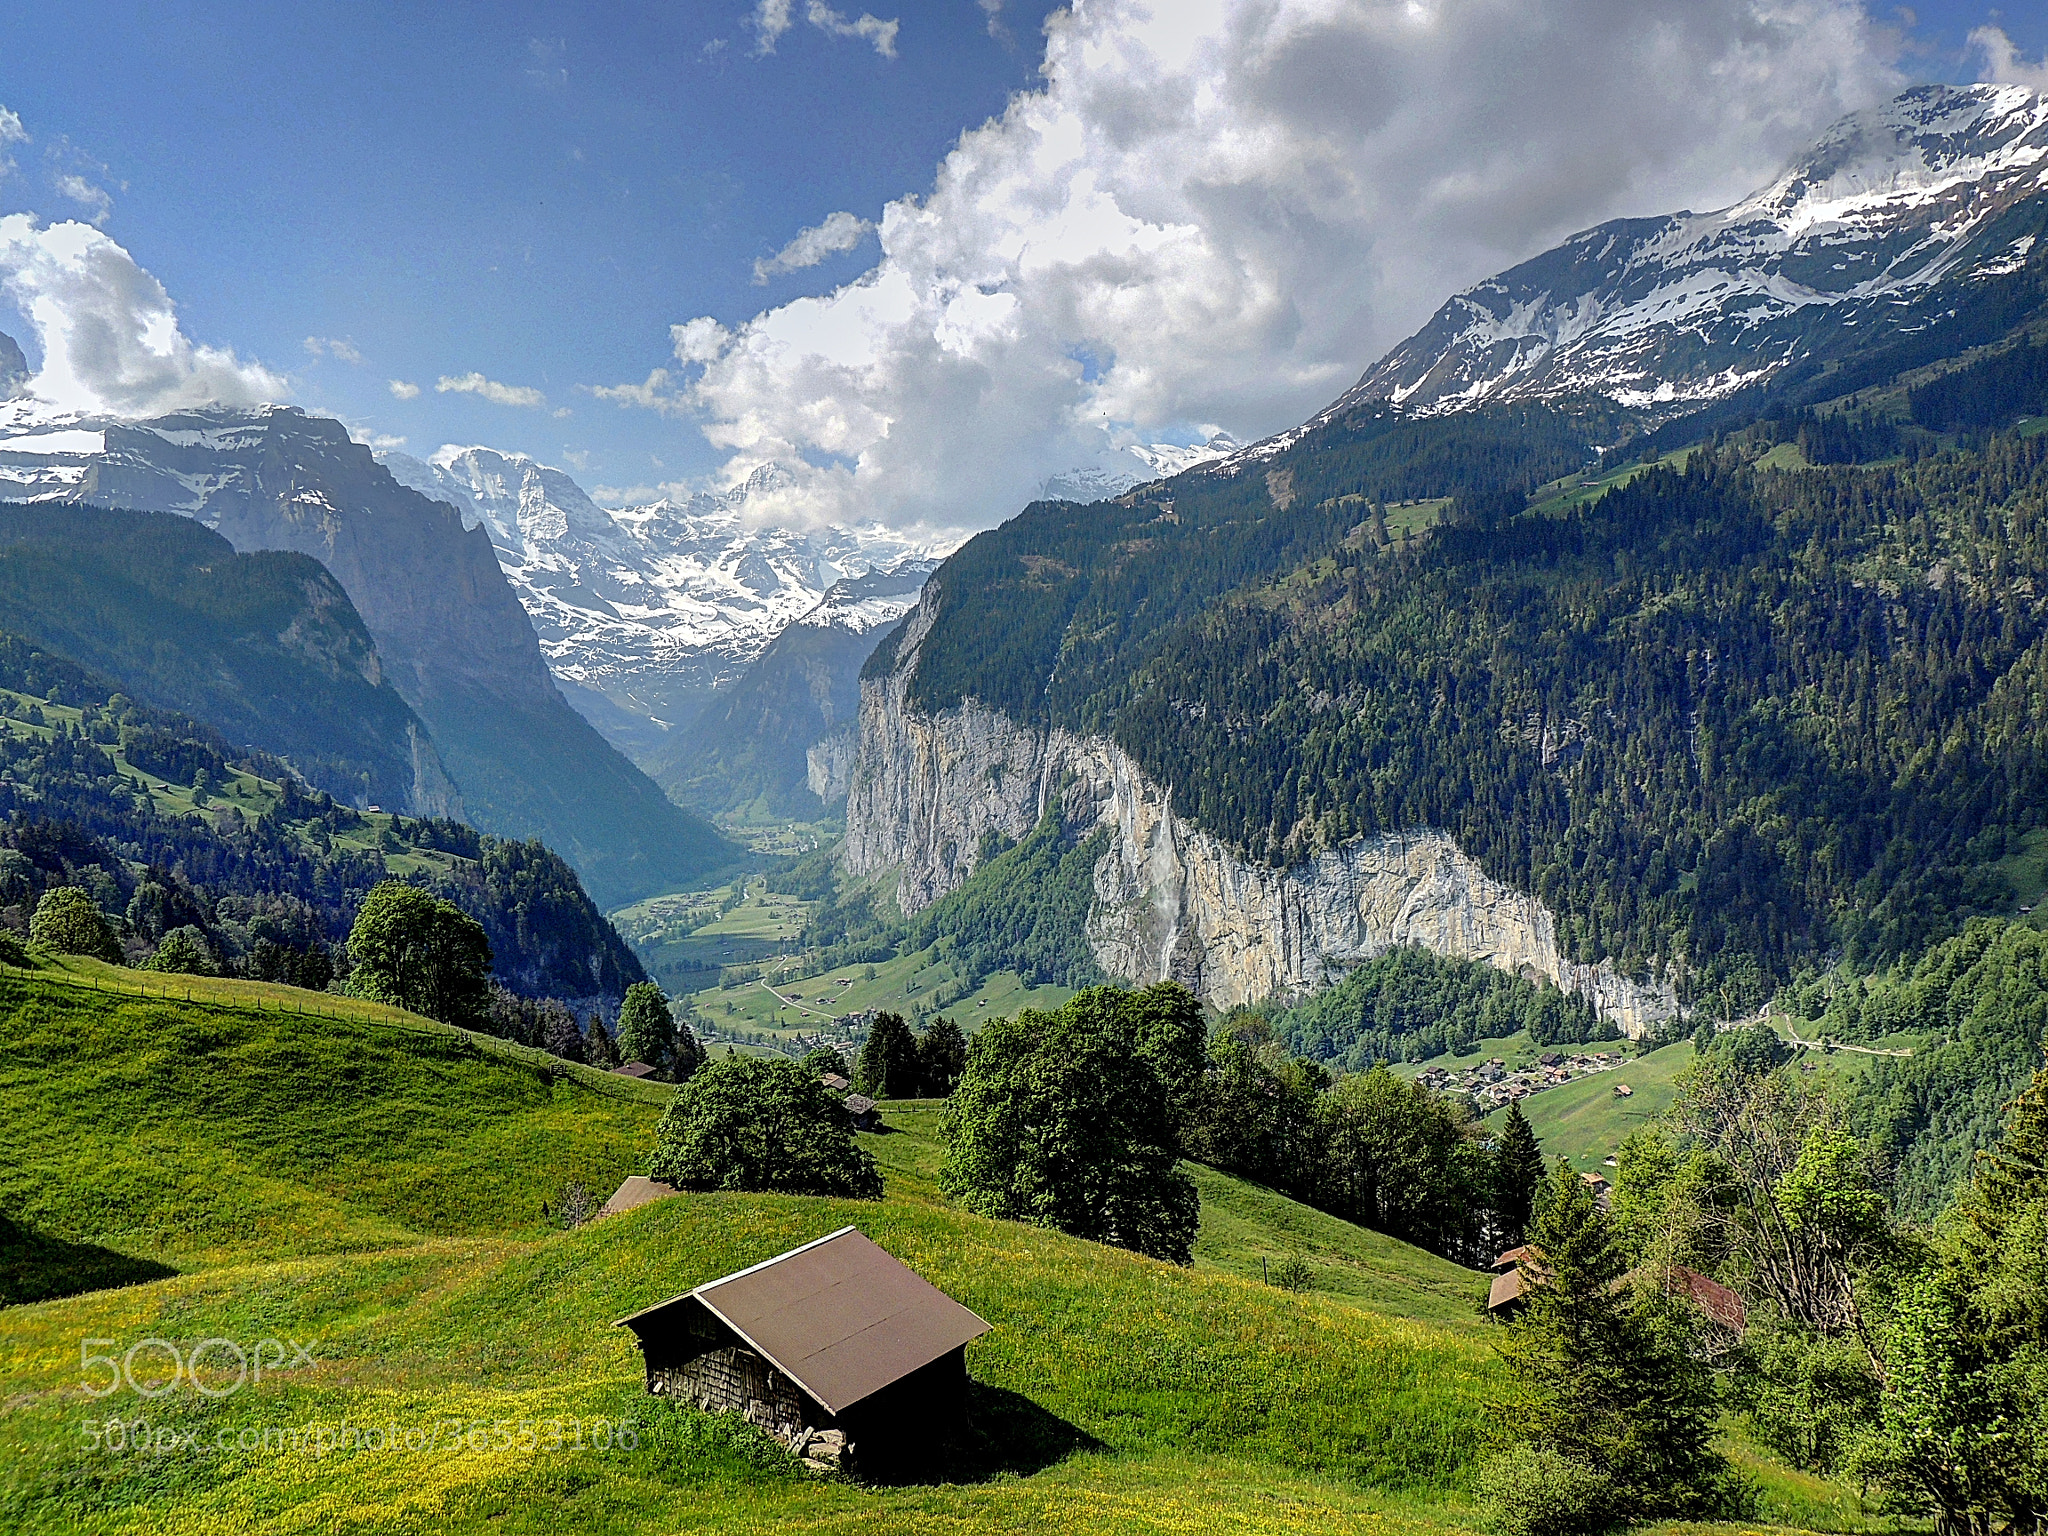 Photograph Heaven on earth (Lauterbrunnen, Switzerland) by Ravi S R on 500px